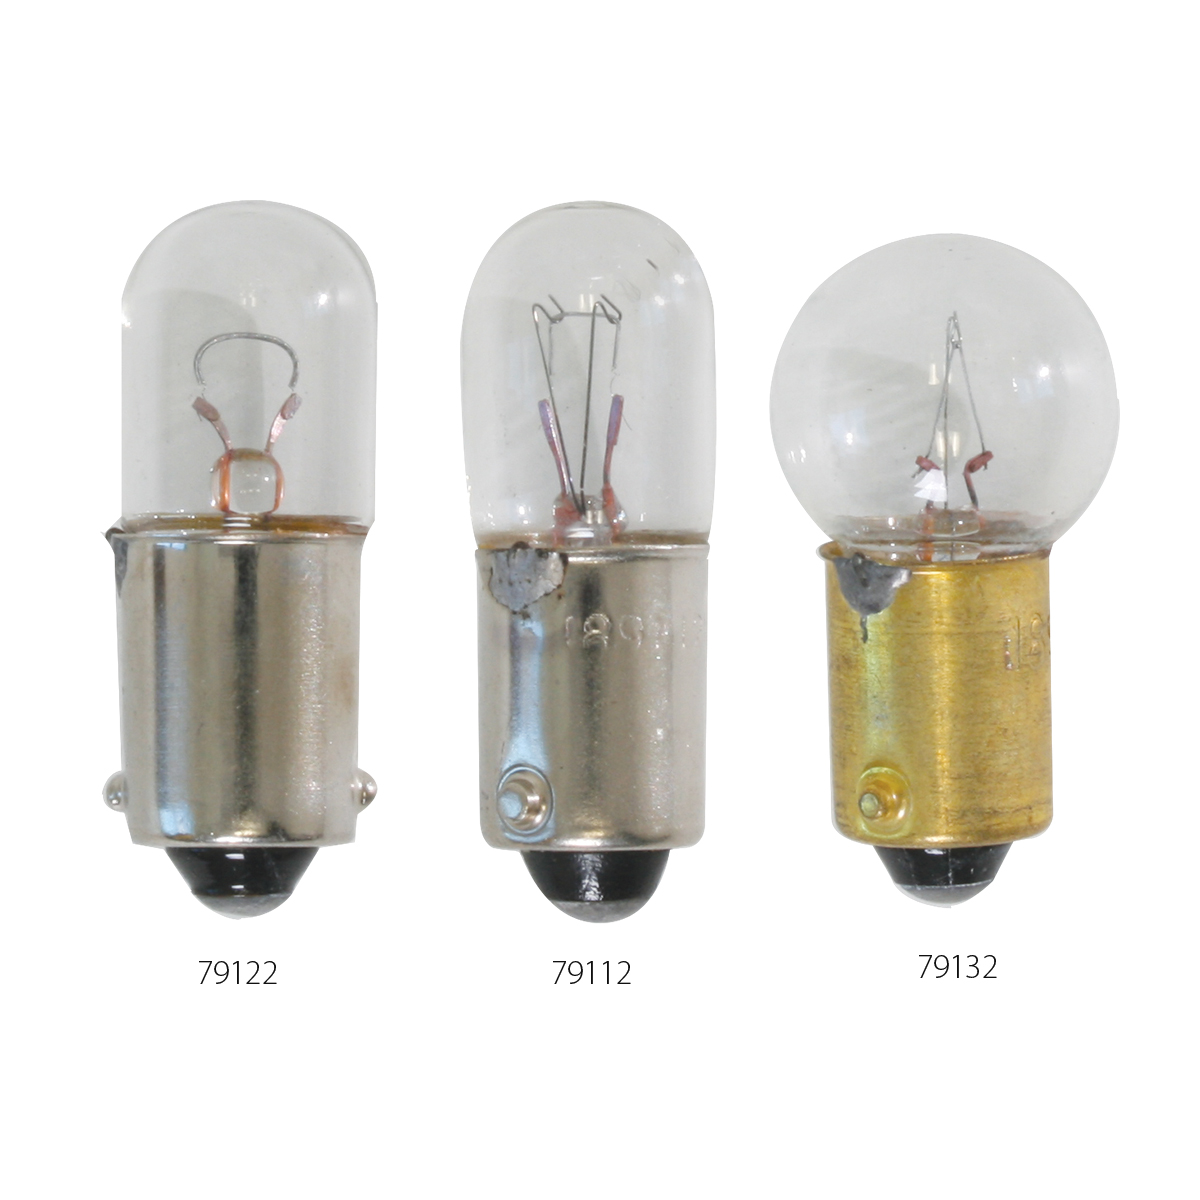 1893 1891 1895 Miniature Replacement Light Bulbs Grand General Auto Parts Accessories